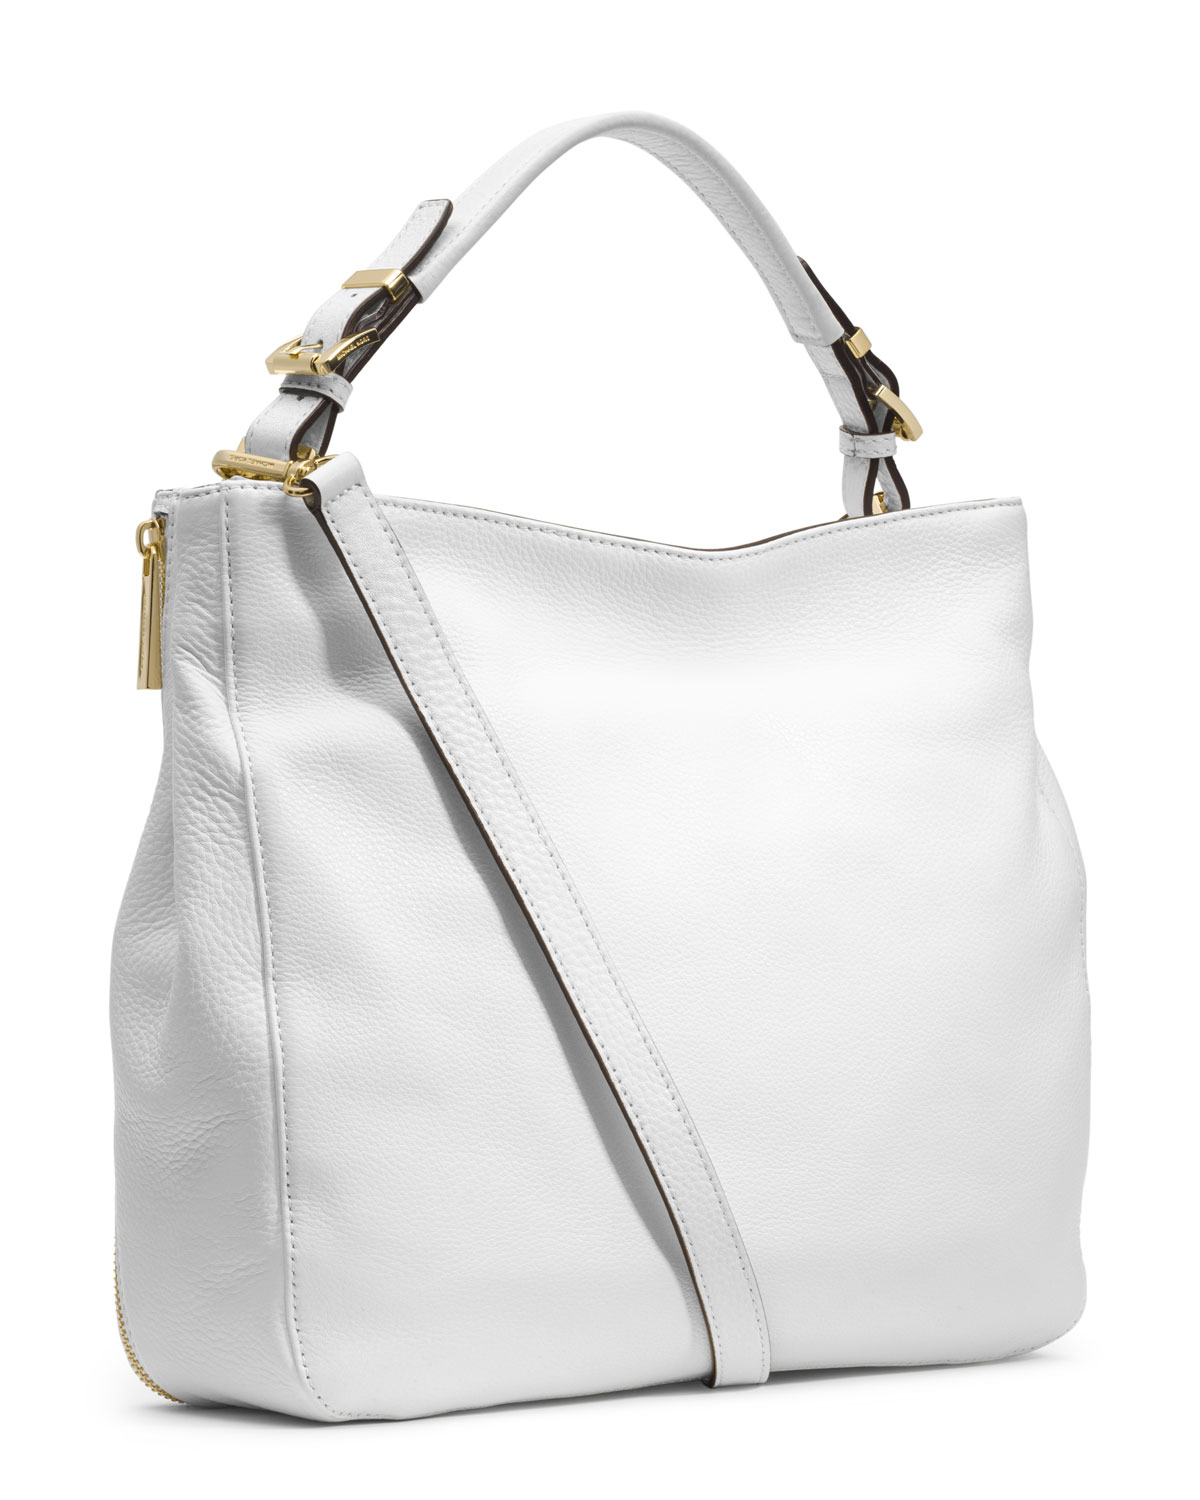 01d56a98a7 ... greece lyst michael michael kors large essex convertible shoulder bag  in white 6d7bf 02776